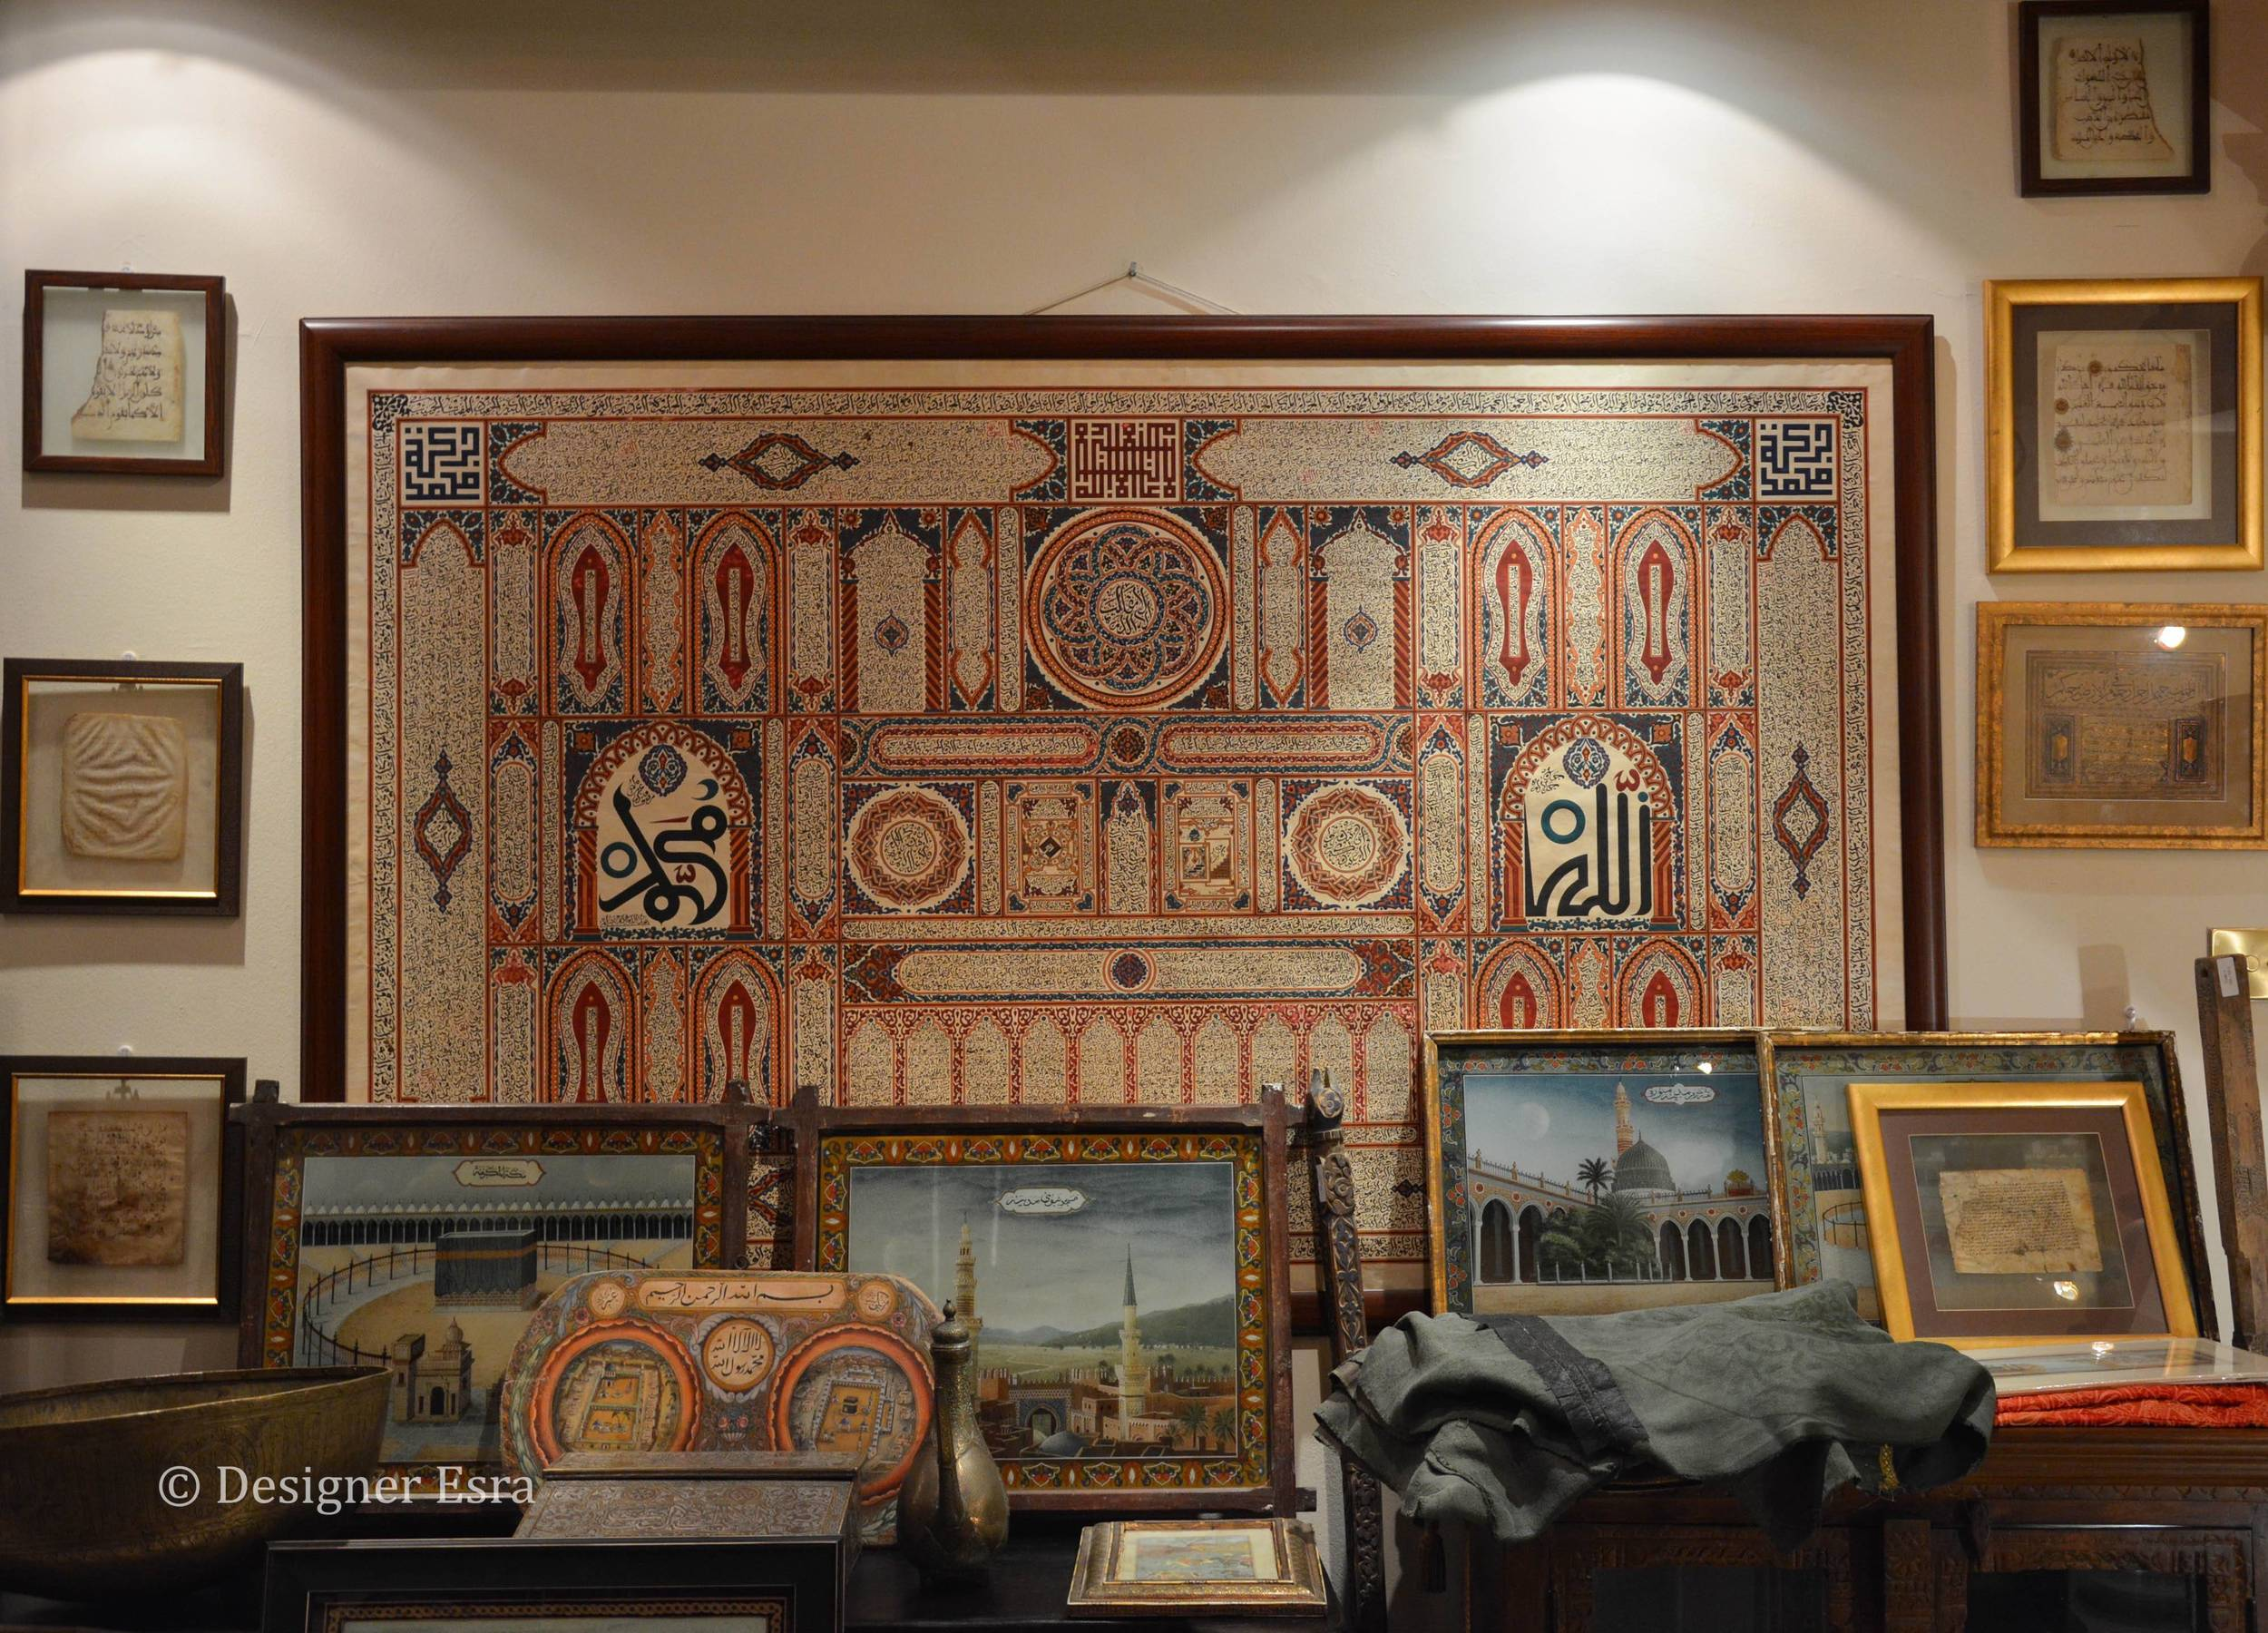 Detailed Islamic Art Piece at Collectiable Qurans at Etihad Antique Gallery